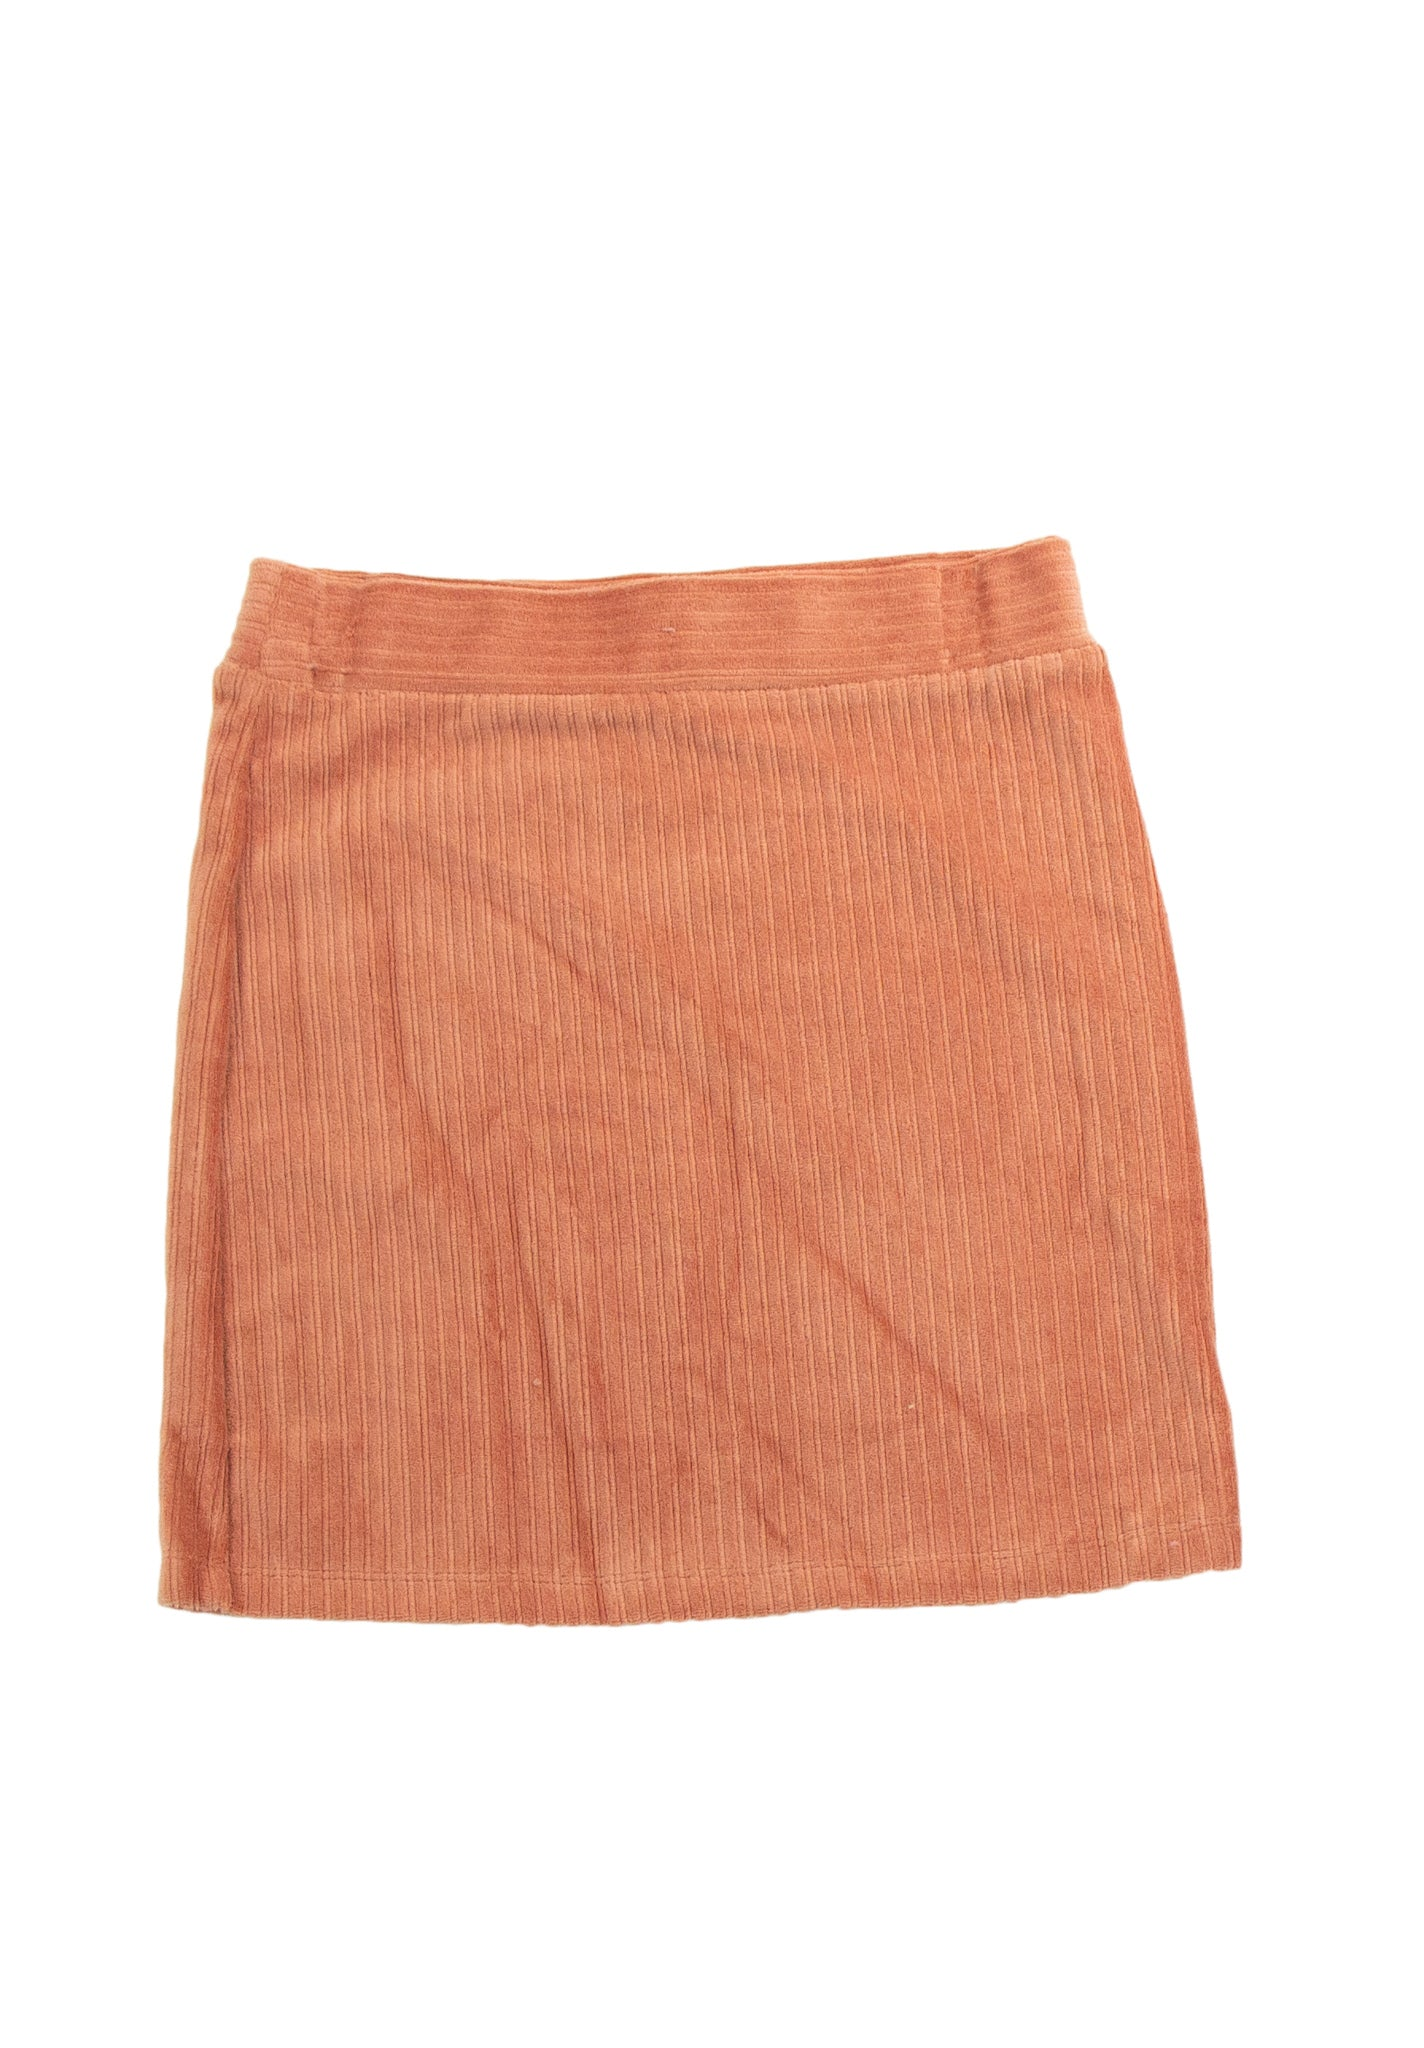 Urbane Skirt in Pink